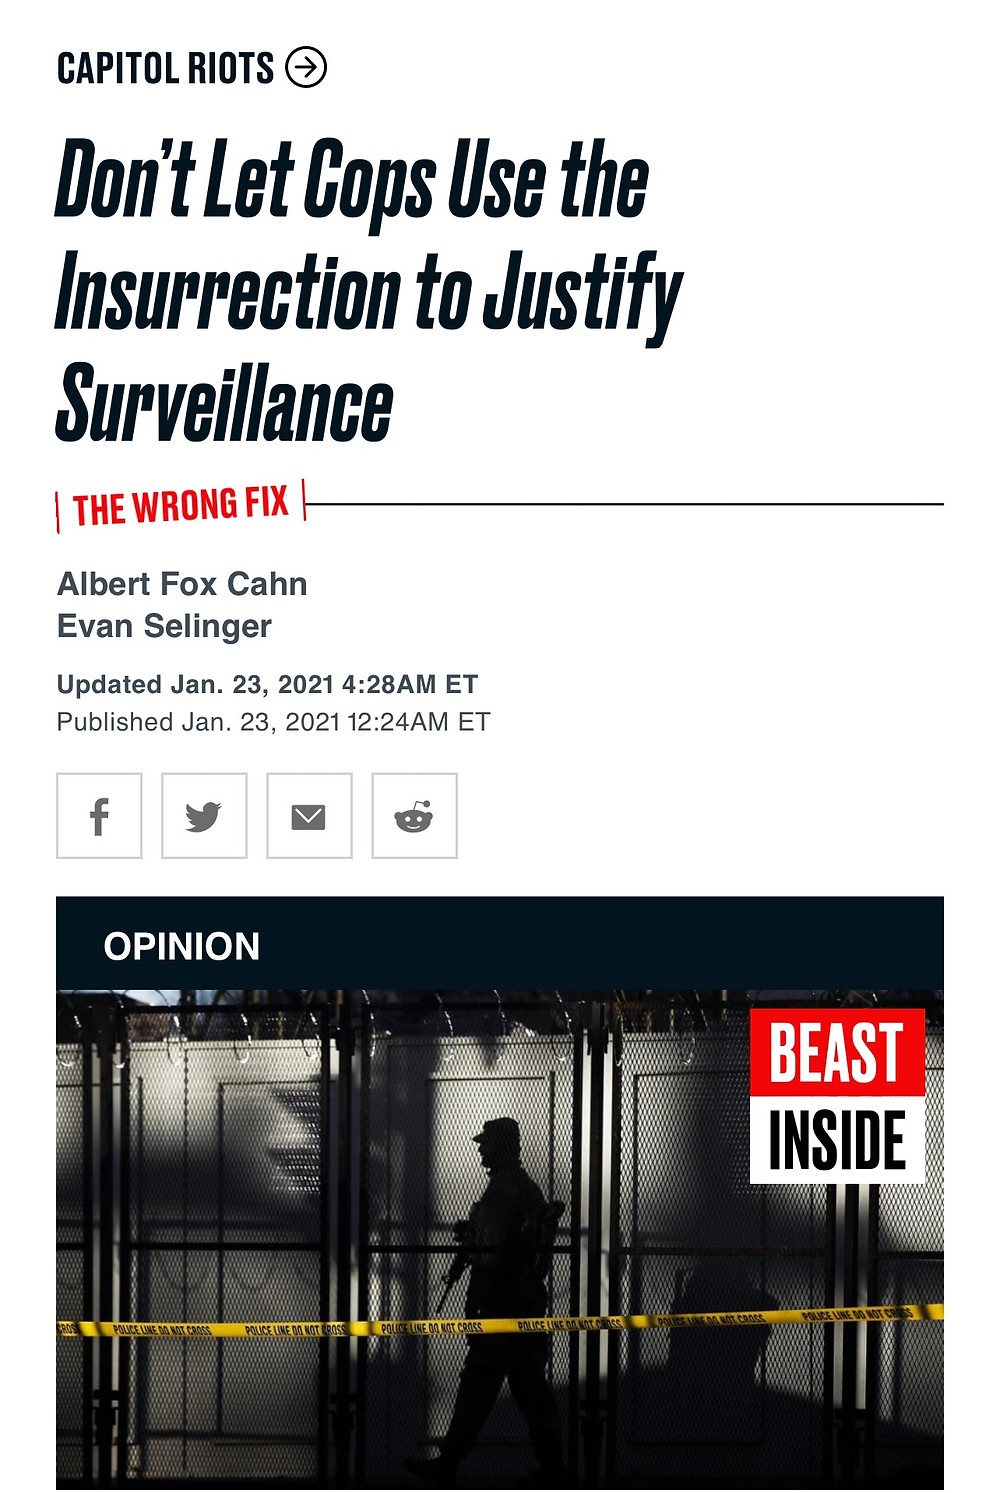 News post from Beast Inside stating 'Don't Let Cops Use the Insurrection to Justify Surveillance'.